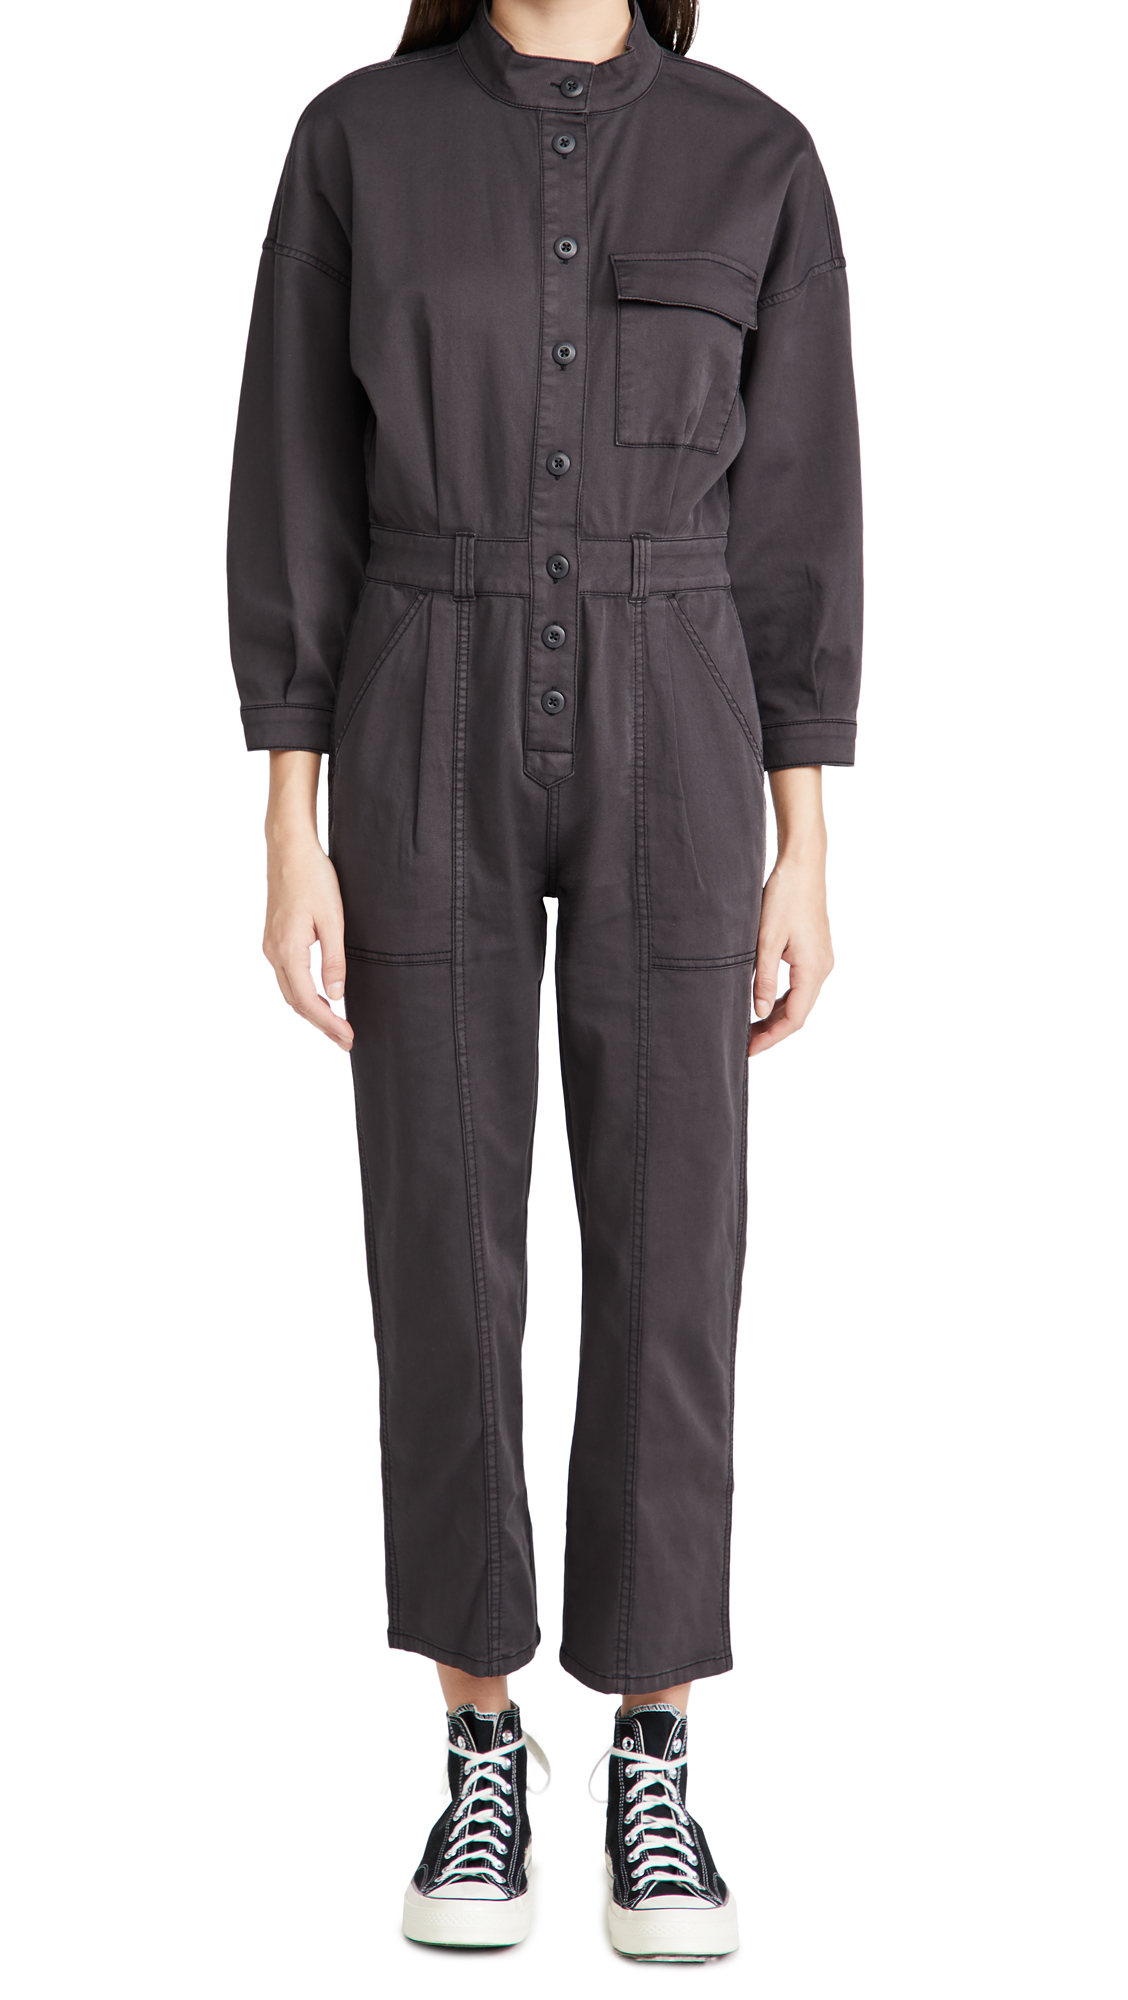 Current/Elliott The Meta Coveralls